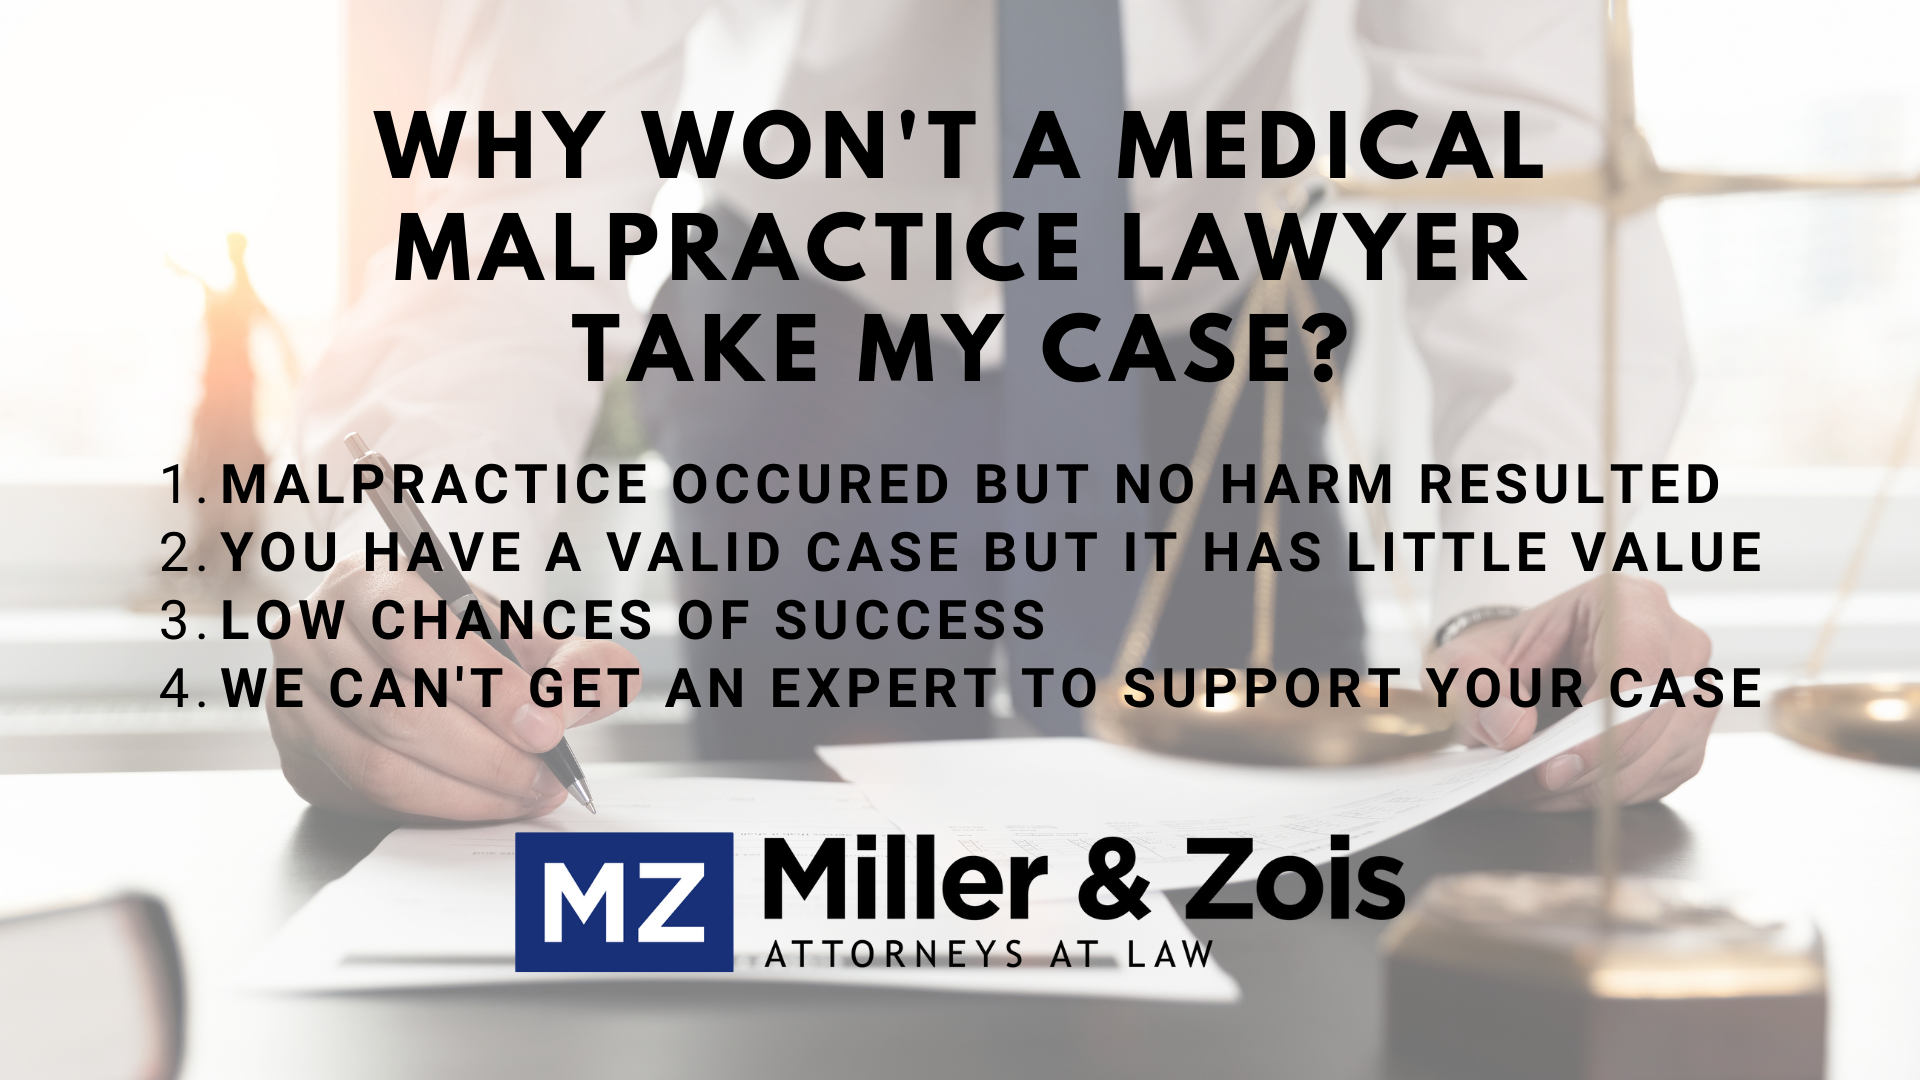 why won't a medical malpractice lawyer take my case?